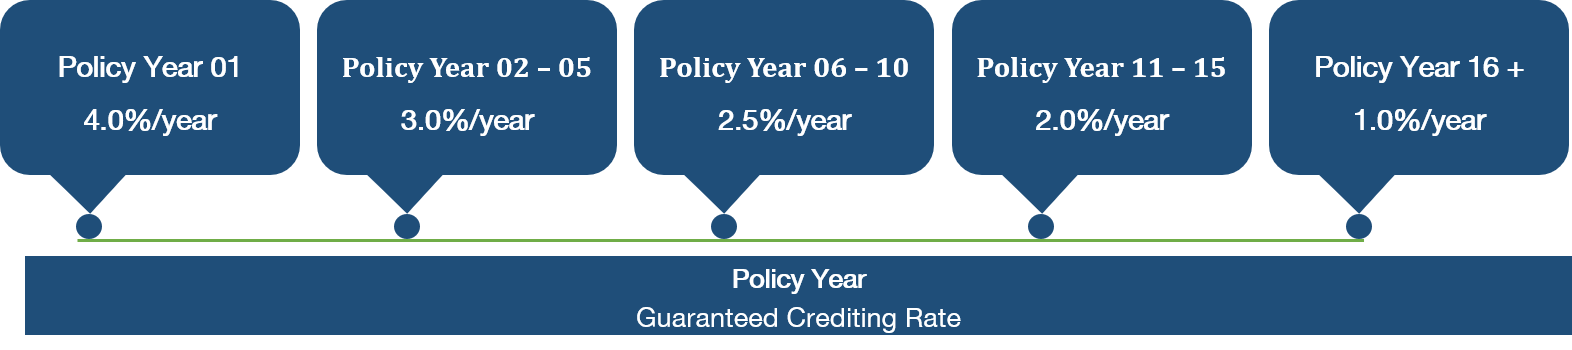 Crediting-rate